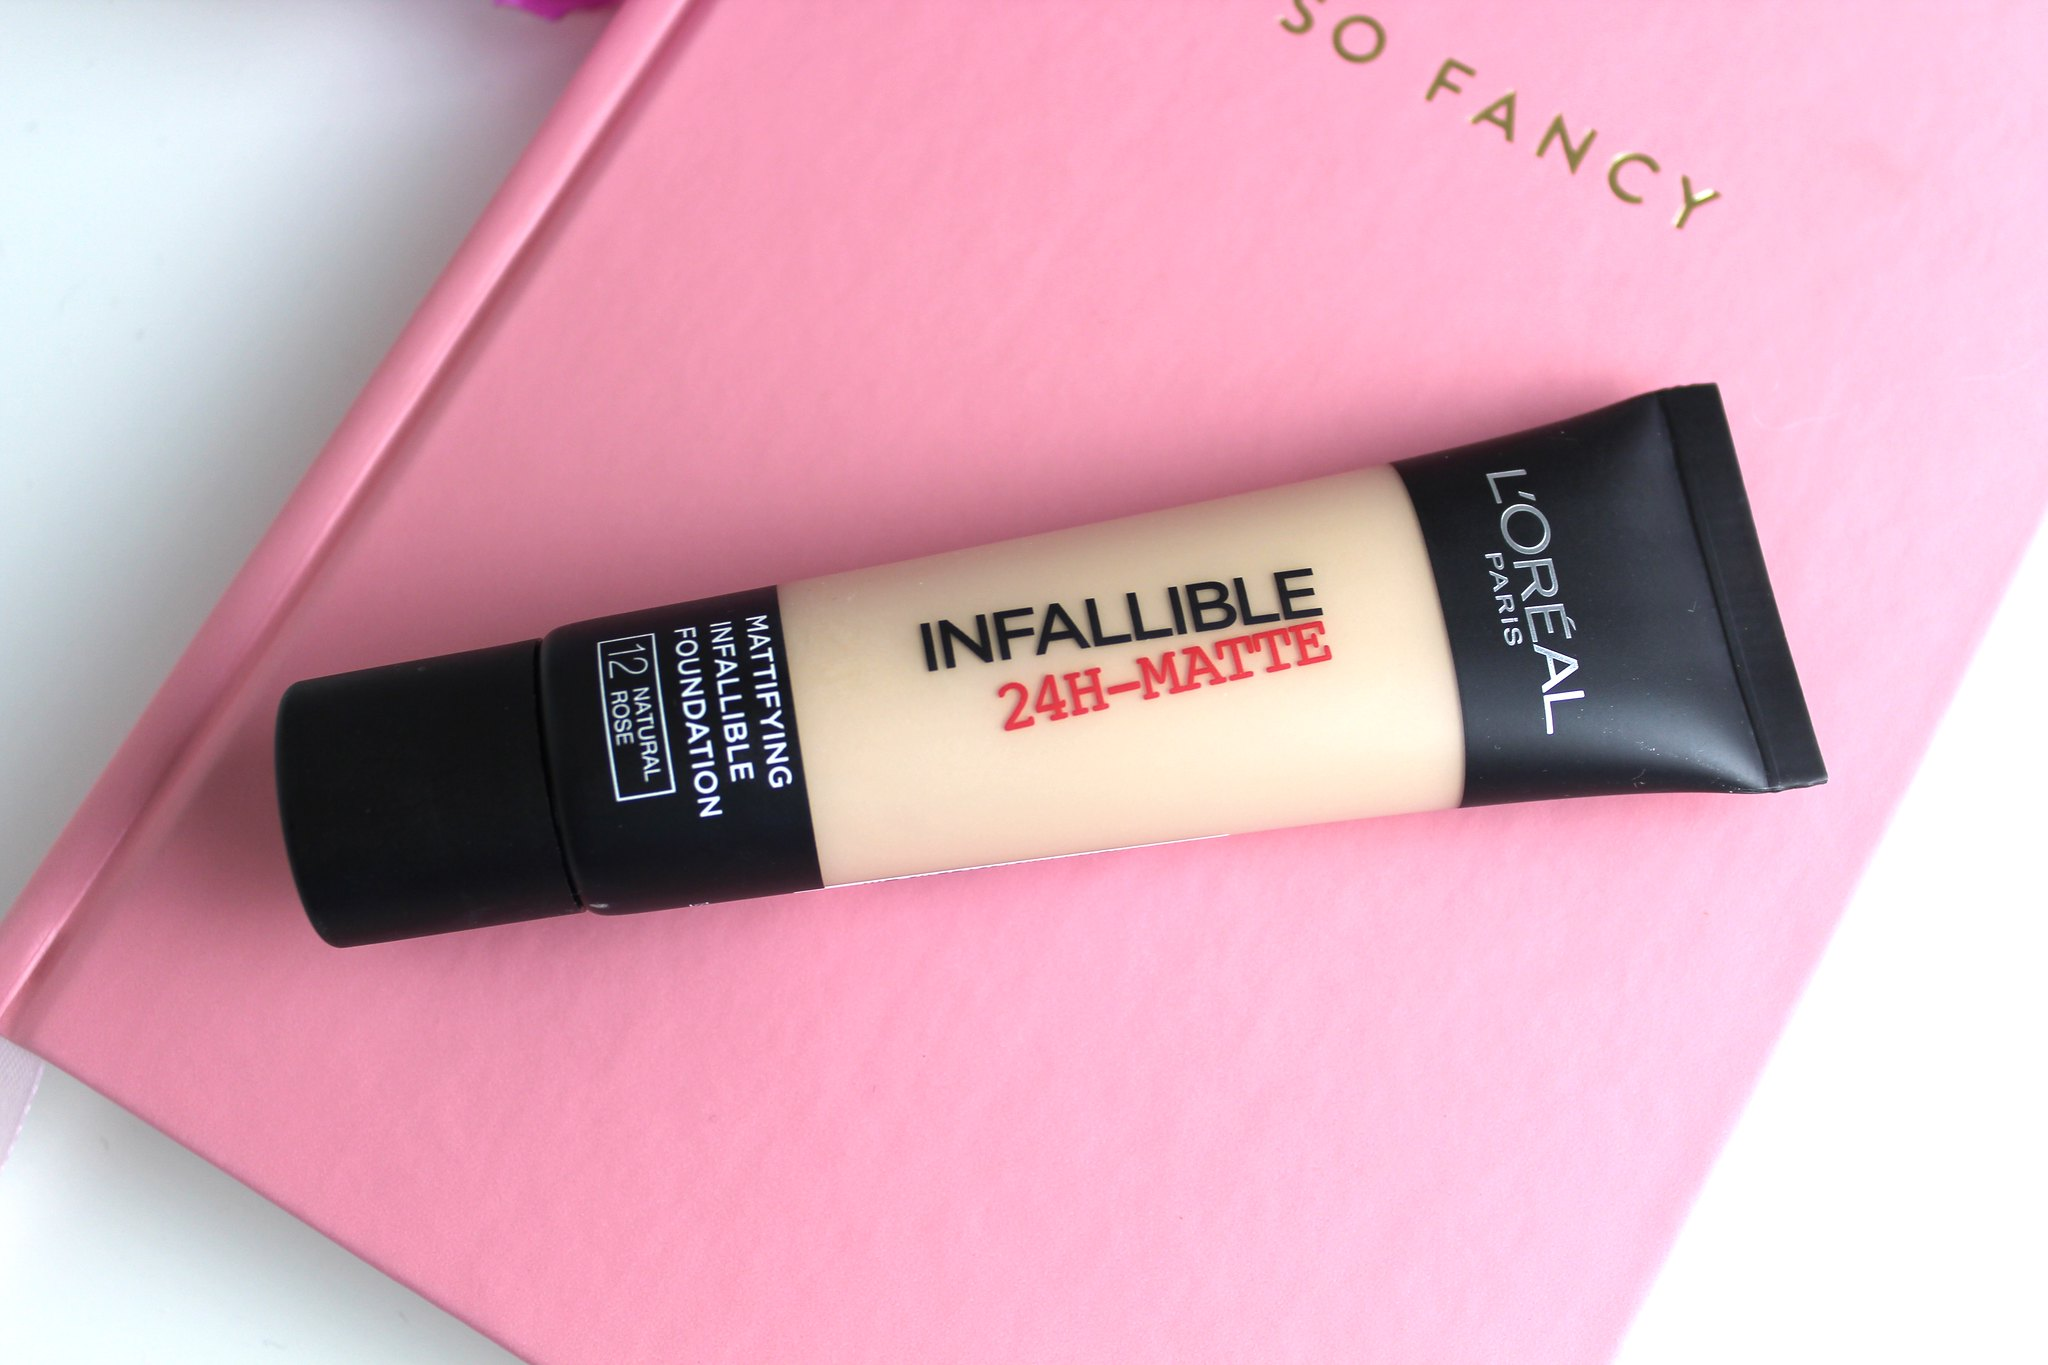 Loreal Infallible Matte Foundation